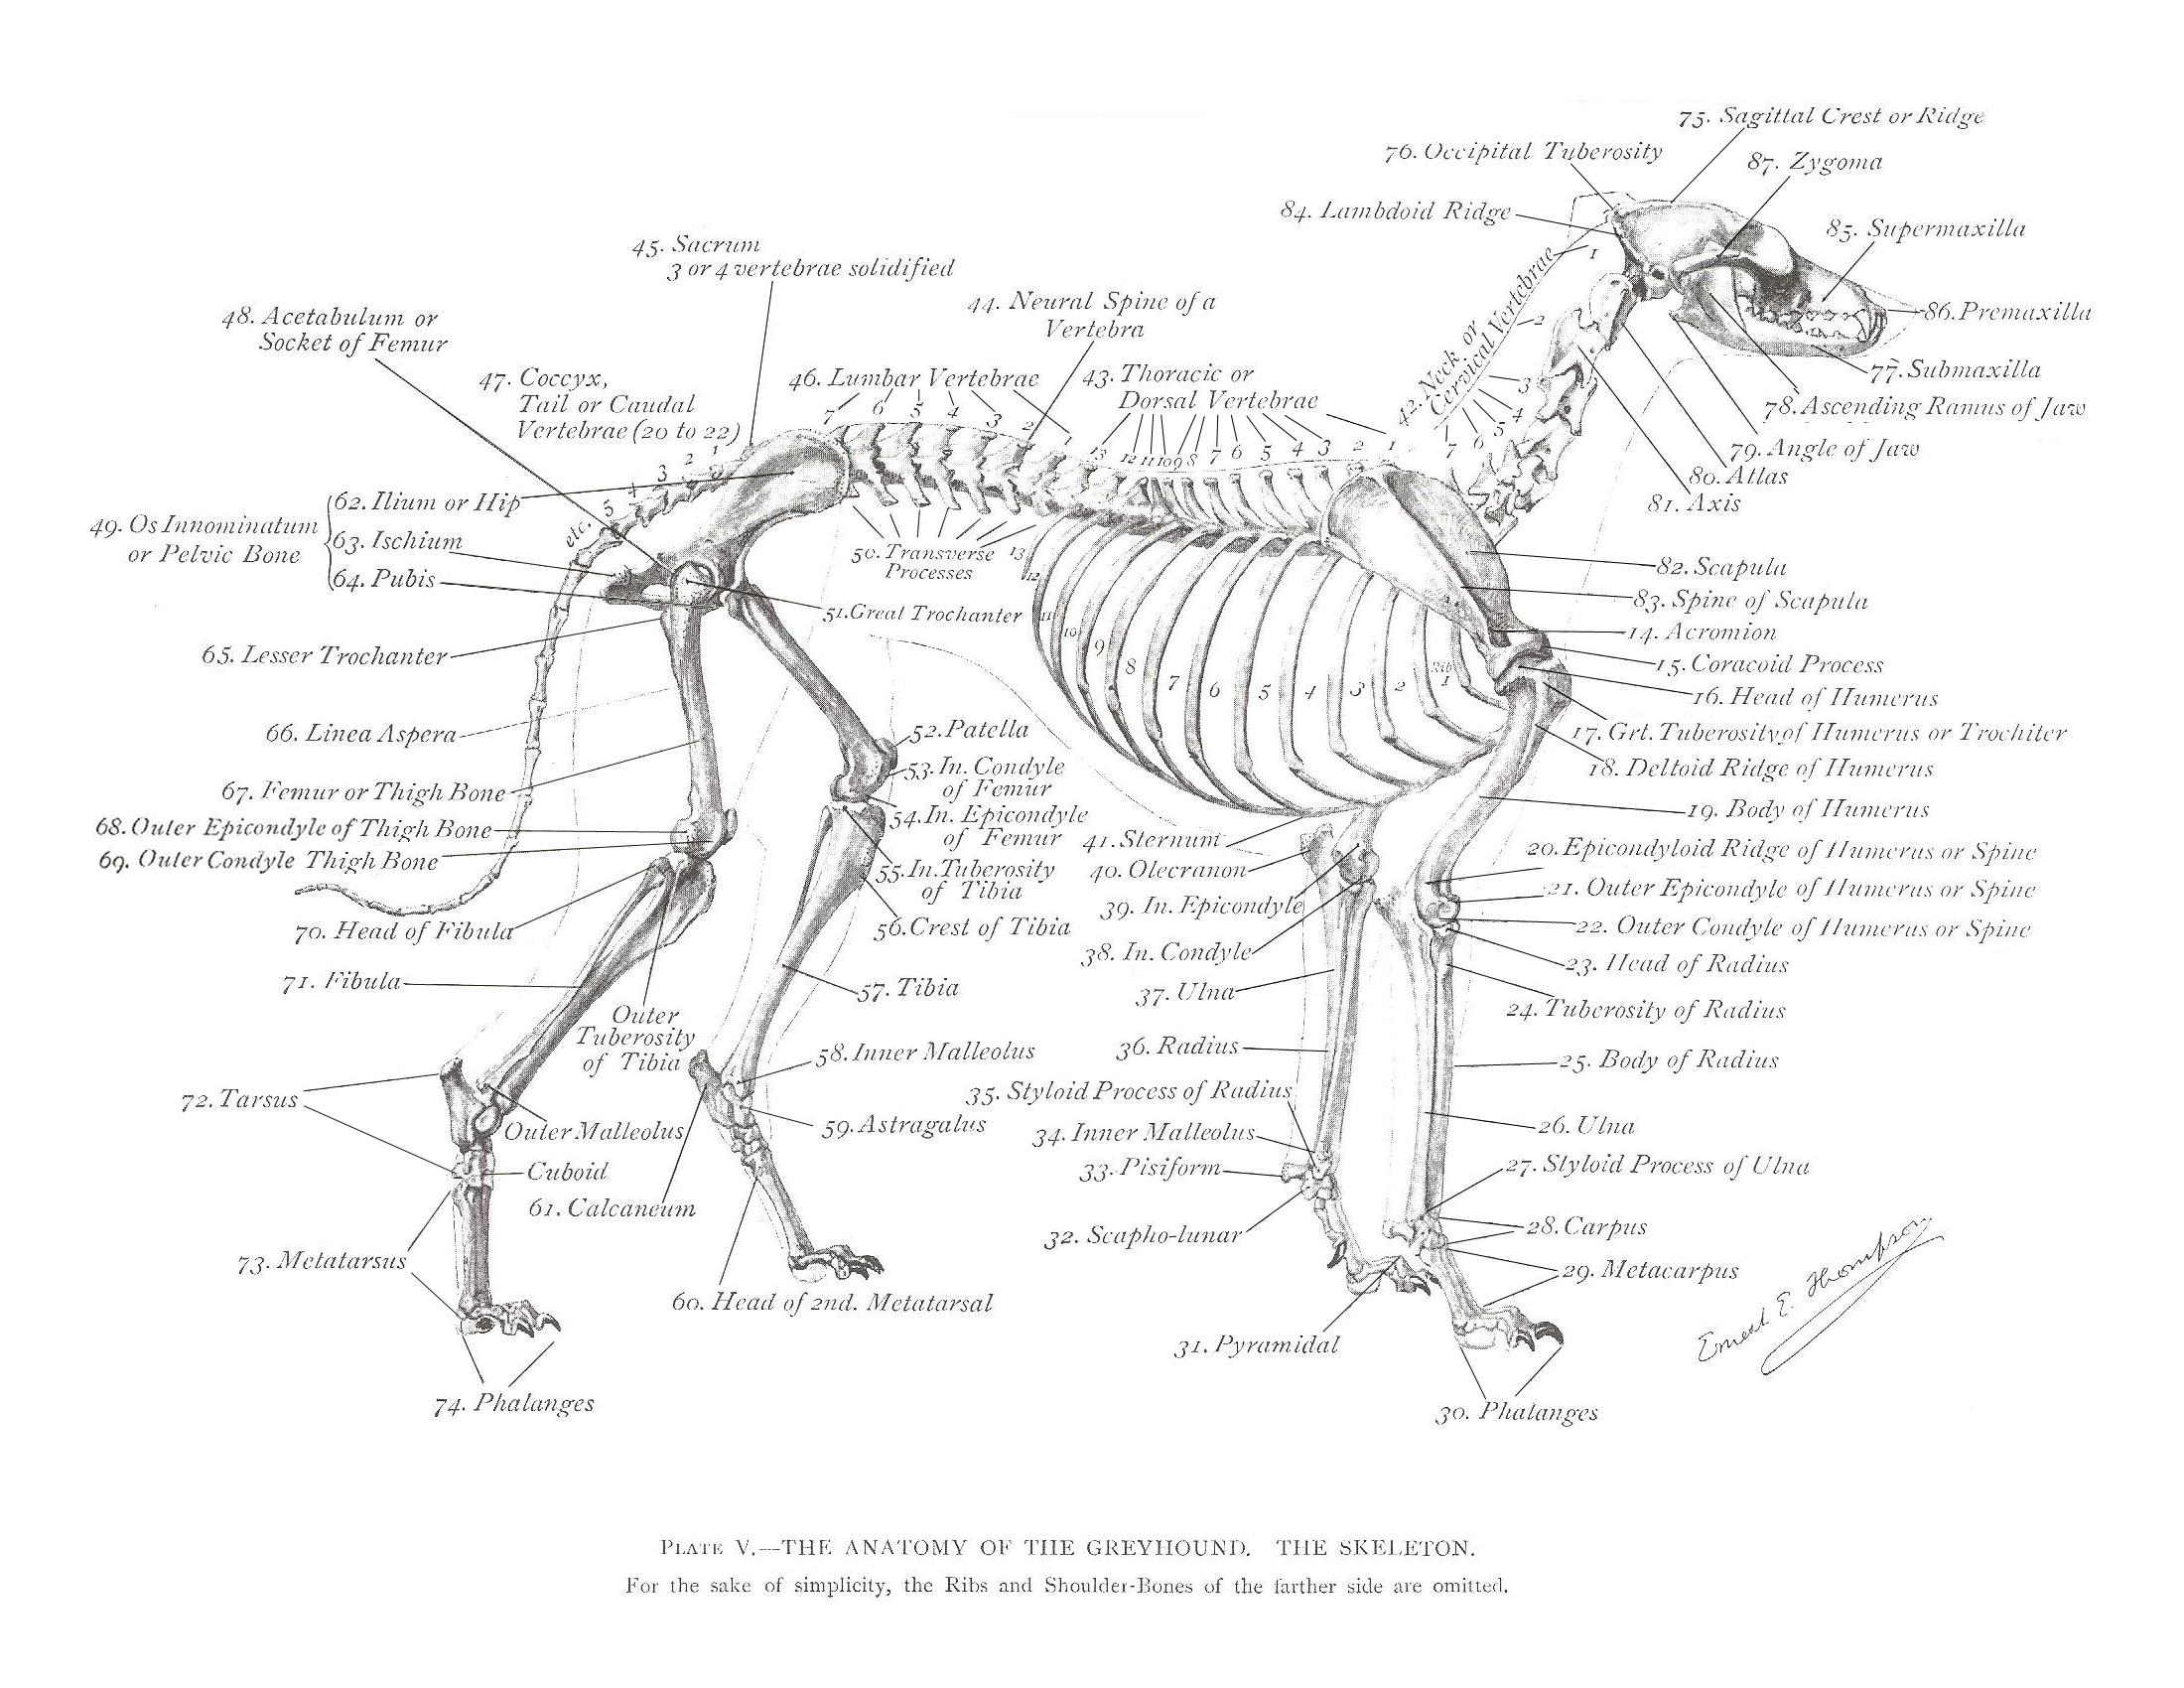 Greyhound Anatomy Diagram - The Skeleton - click the link to get ...